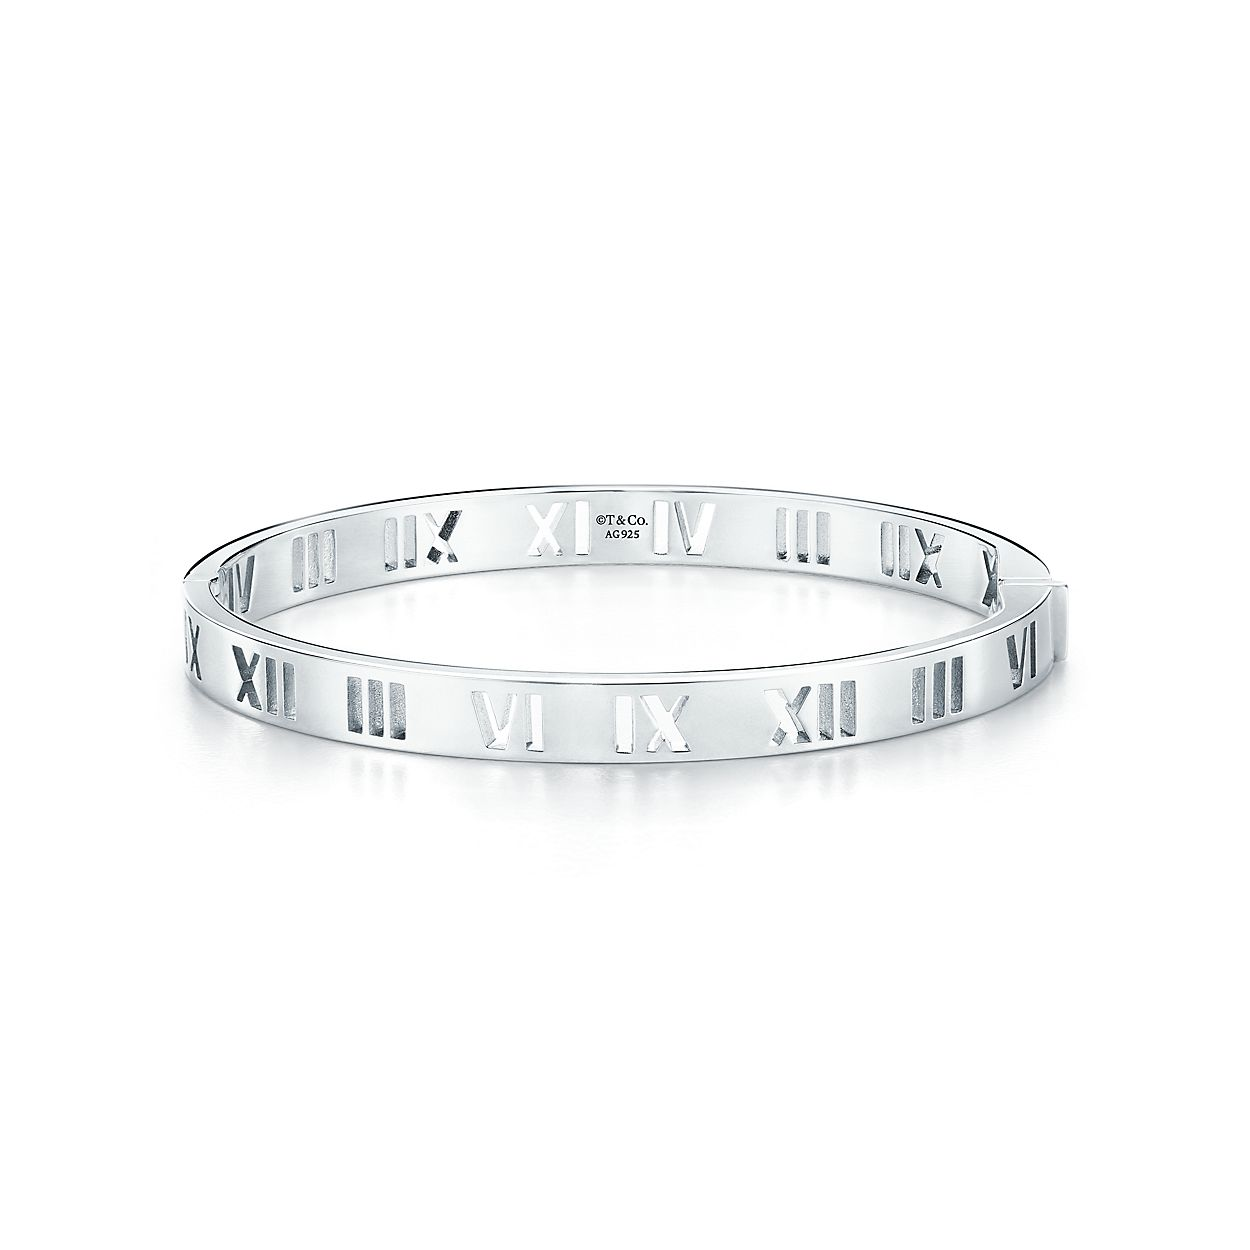 cubic bangles zirconia tw peo silver products and bangle sterling progressive ct bracelet hinged grande